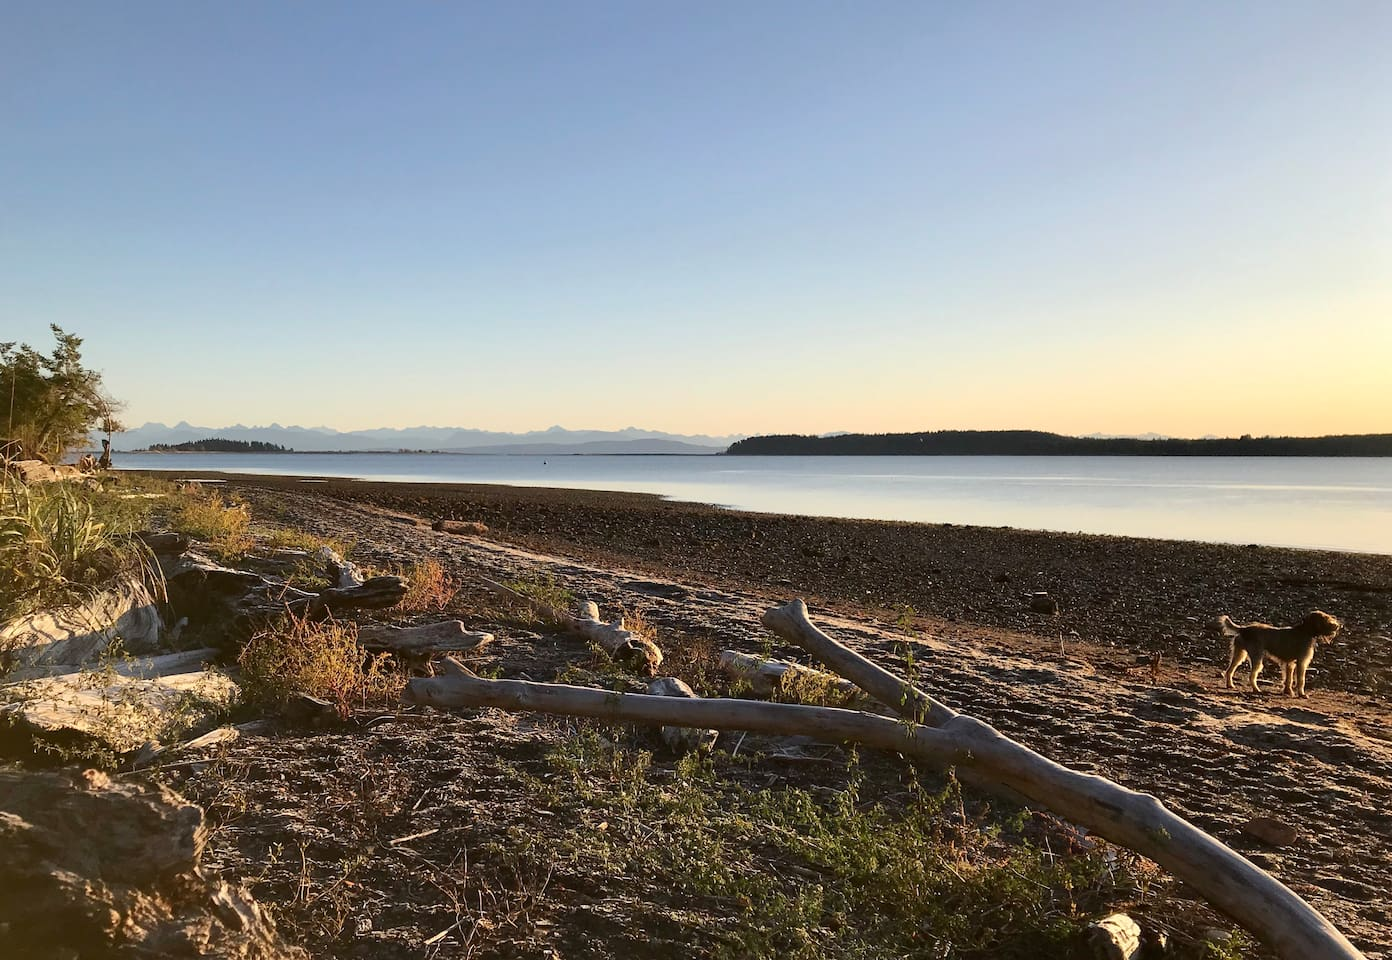 Union Bay beach offers great dog friendly trails, stunning views over to Tree Island and Denman Island.  Eagle, heron, migratory birds and sea lion sightings are common, keep your eyes peeled for dolphins and whales that cruise the straight.